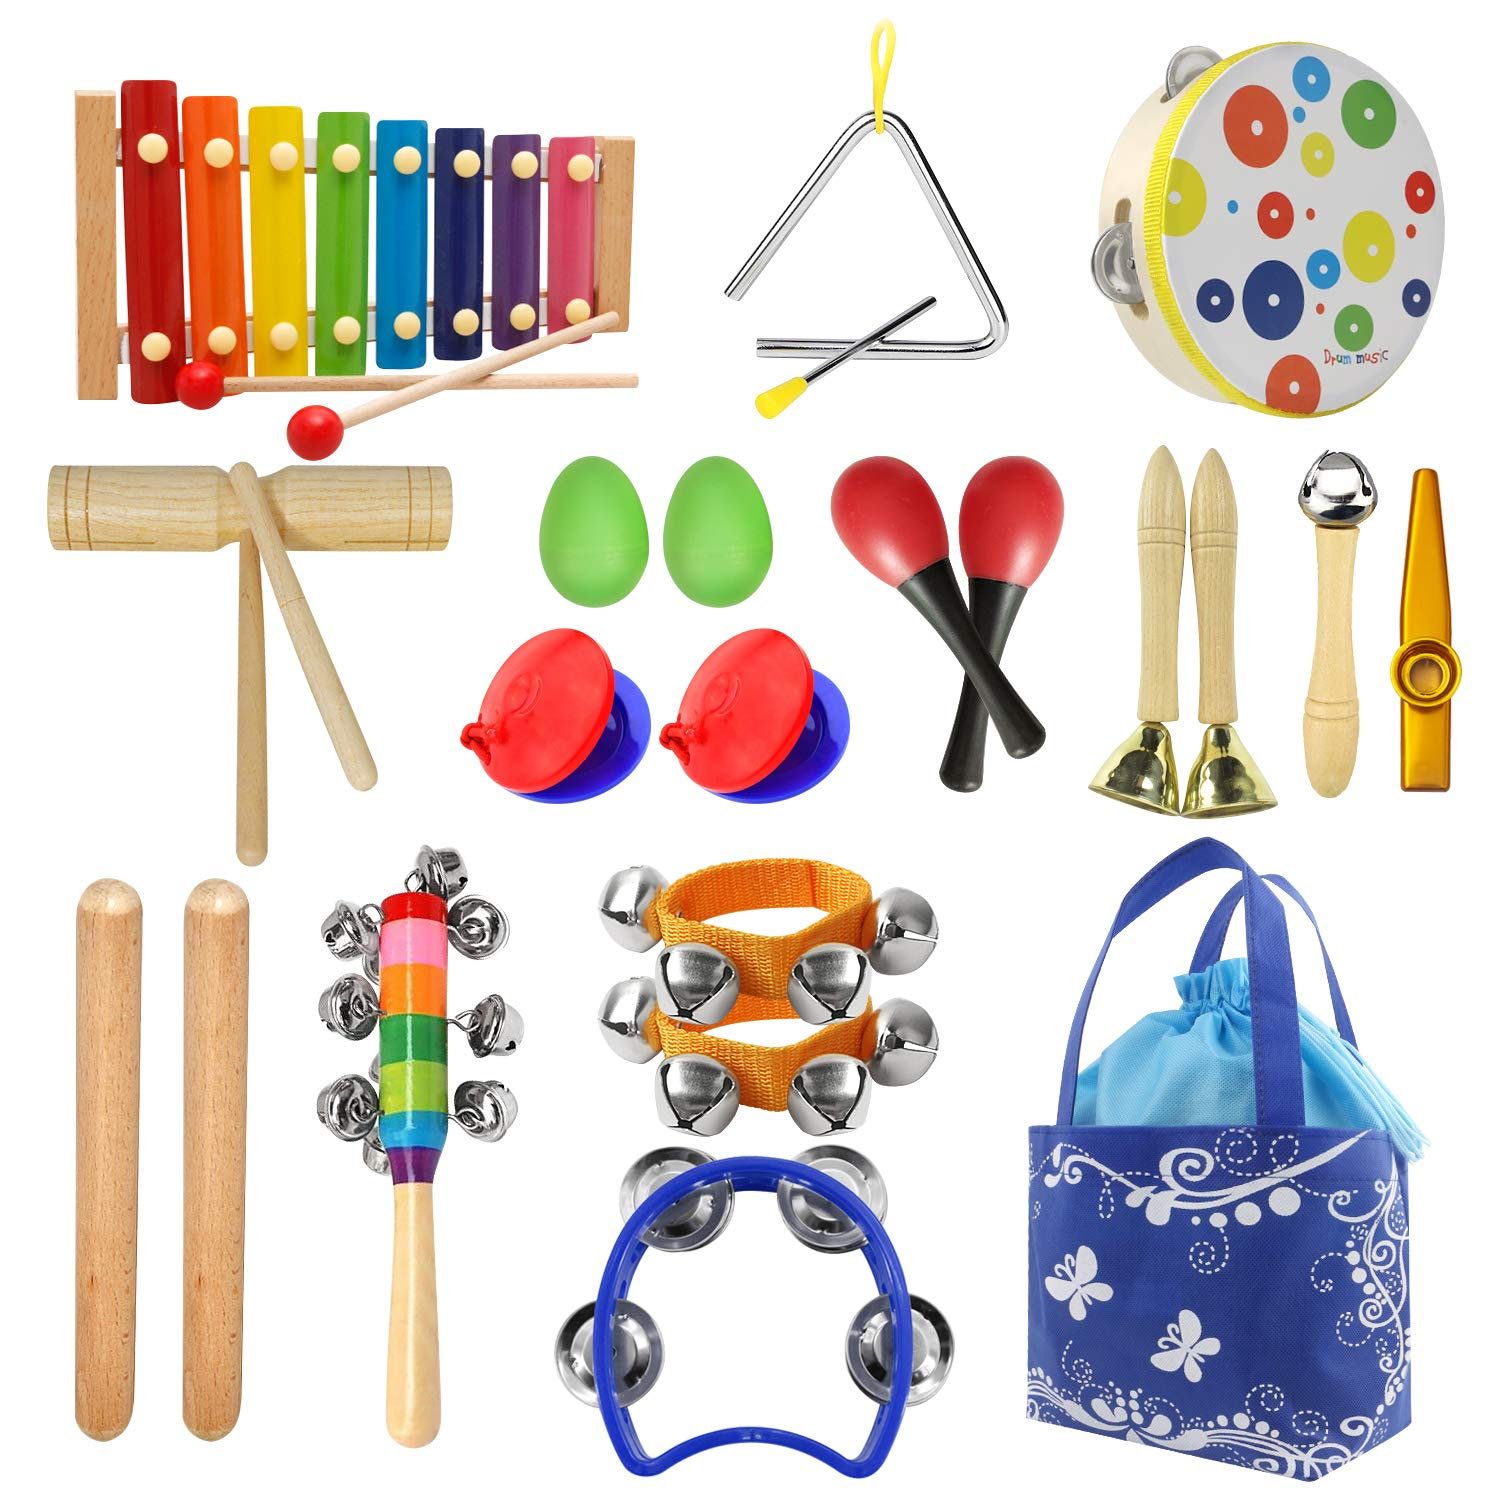 HuoBi Percussion Musical Instruments Toy Set,12Pcs/19Pcs Wooden Percussion Instruments Preschool Educational Toys Bells Egg Shaker with Carry Bag ,Great Party Favors Musical Toys Set for Kids (19pcs)